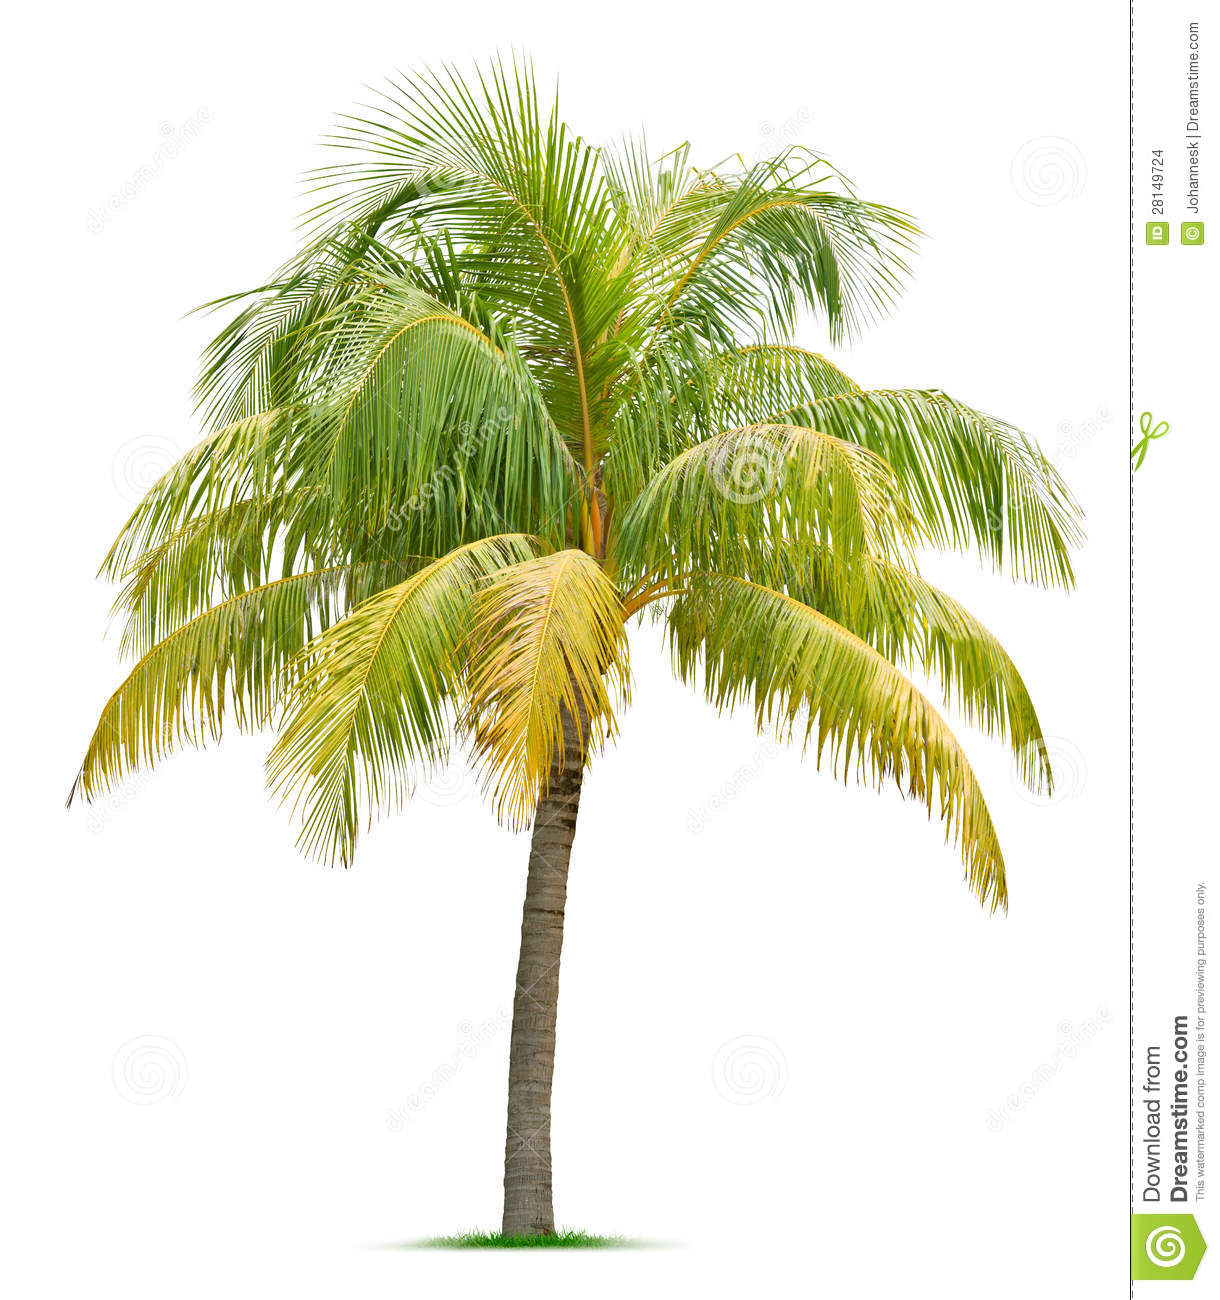 coconut tree stock images image 28149724 clip art palm trees sunny clip art palm trees sunny